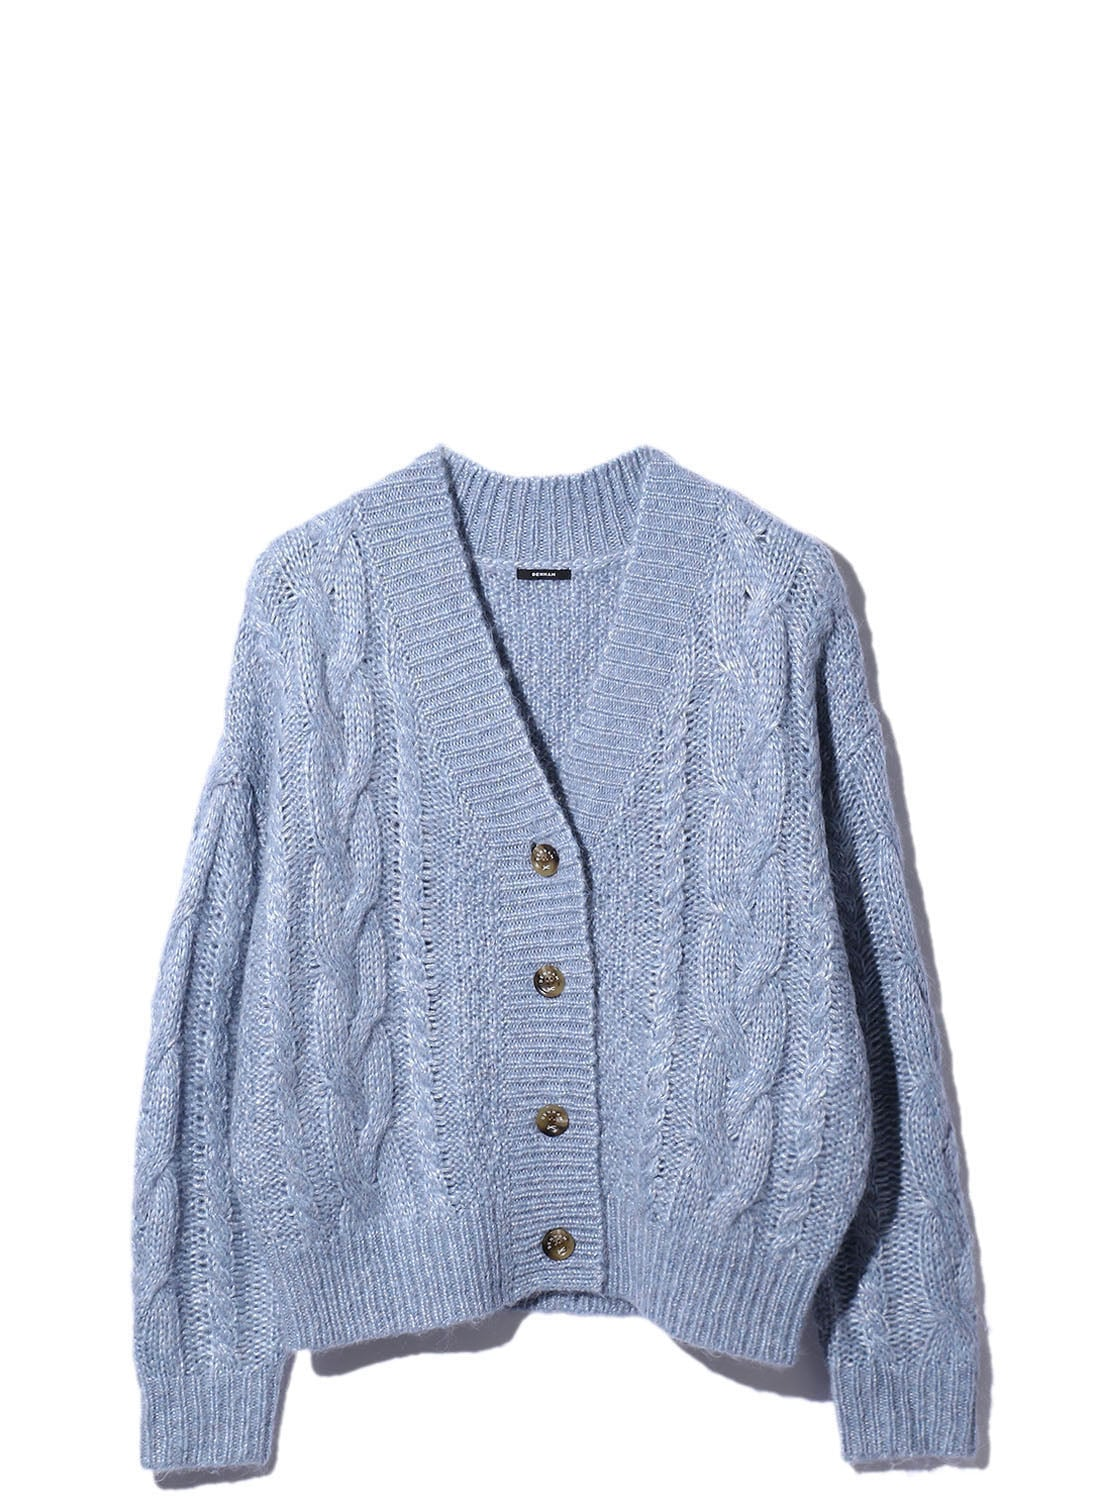 【日本限定】 TINY MOHAIR CARDIGAN